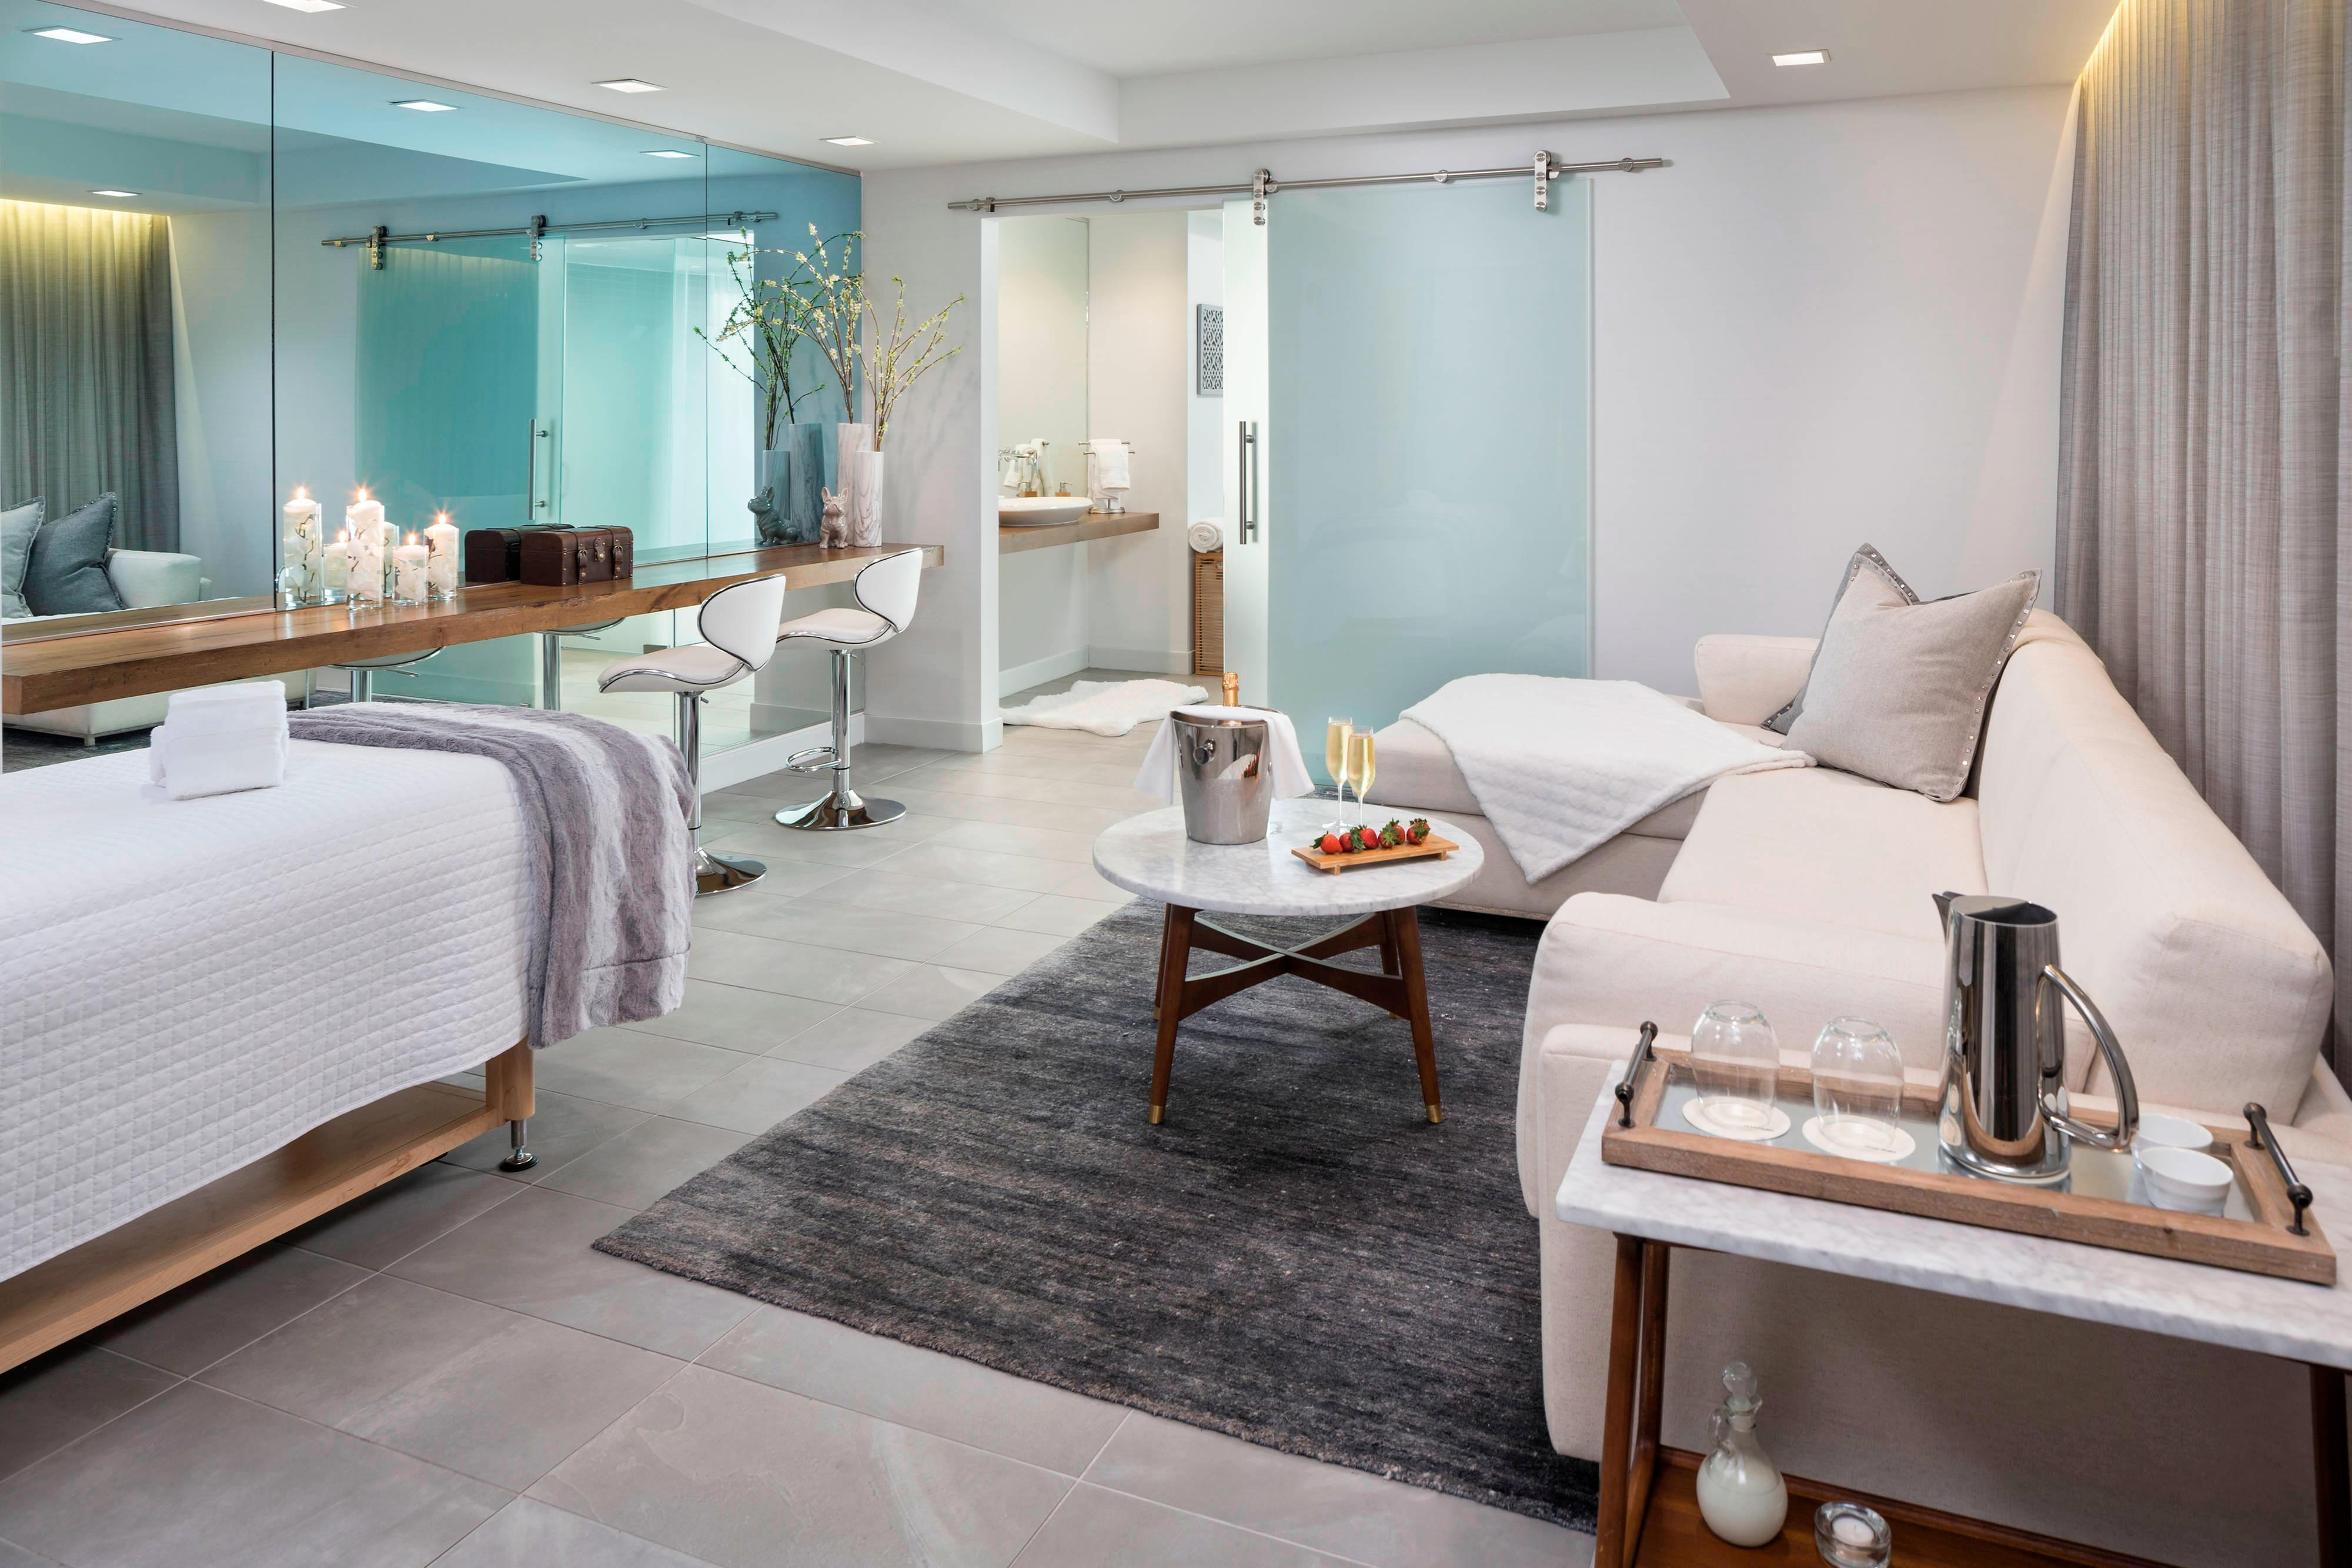 Spa Suite Treatment and Relaxation Room